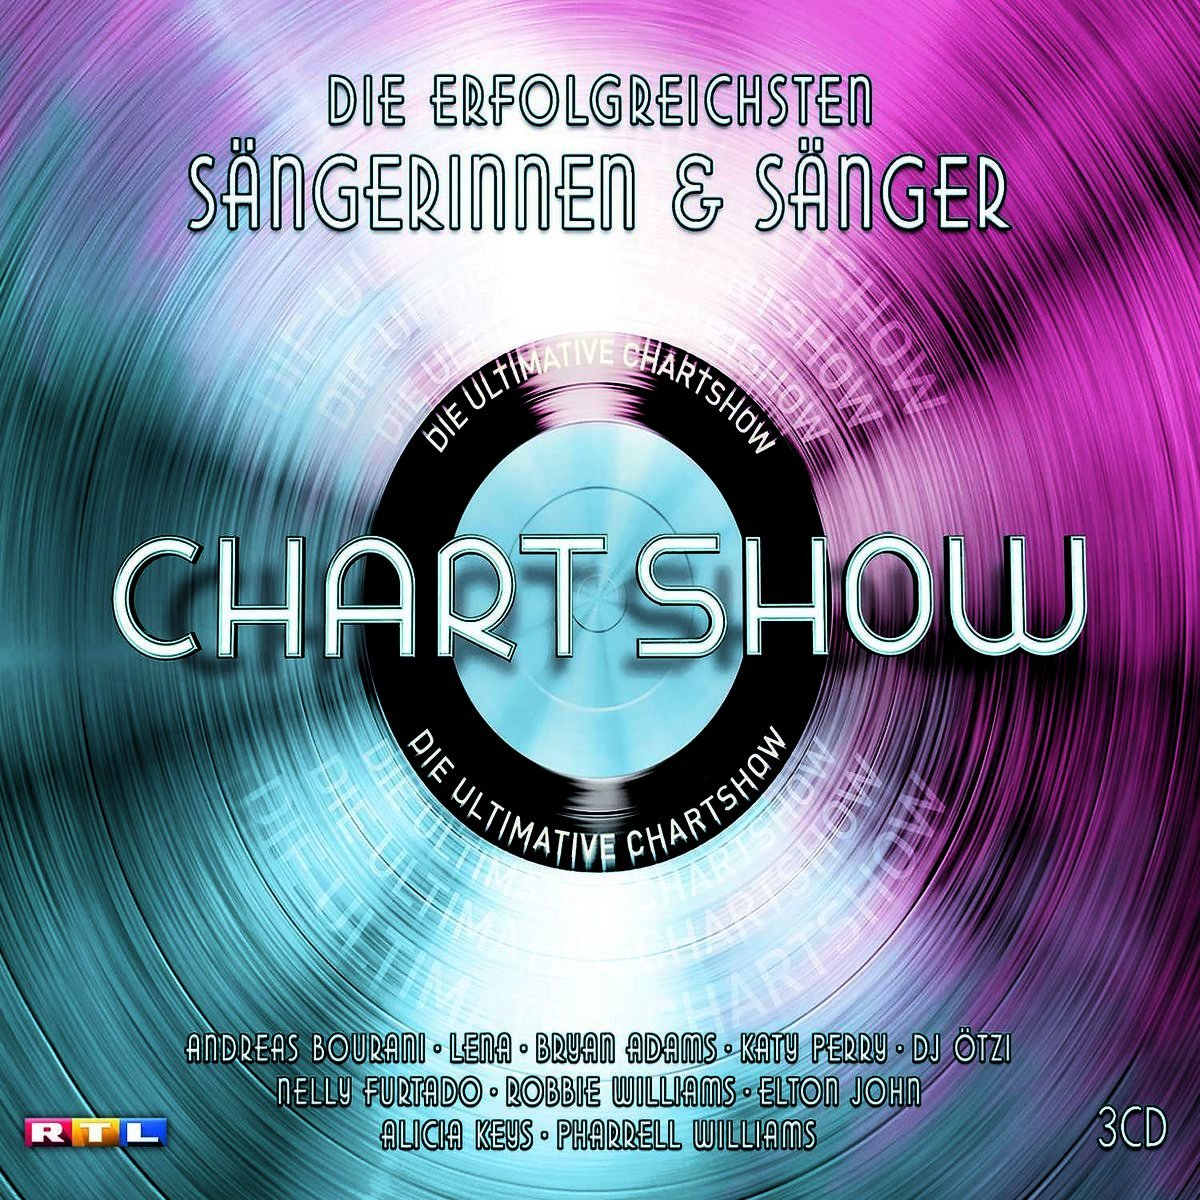 Die ultimative Chartshow am 28.02.2016 ab 2115 bei RTL